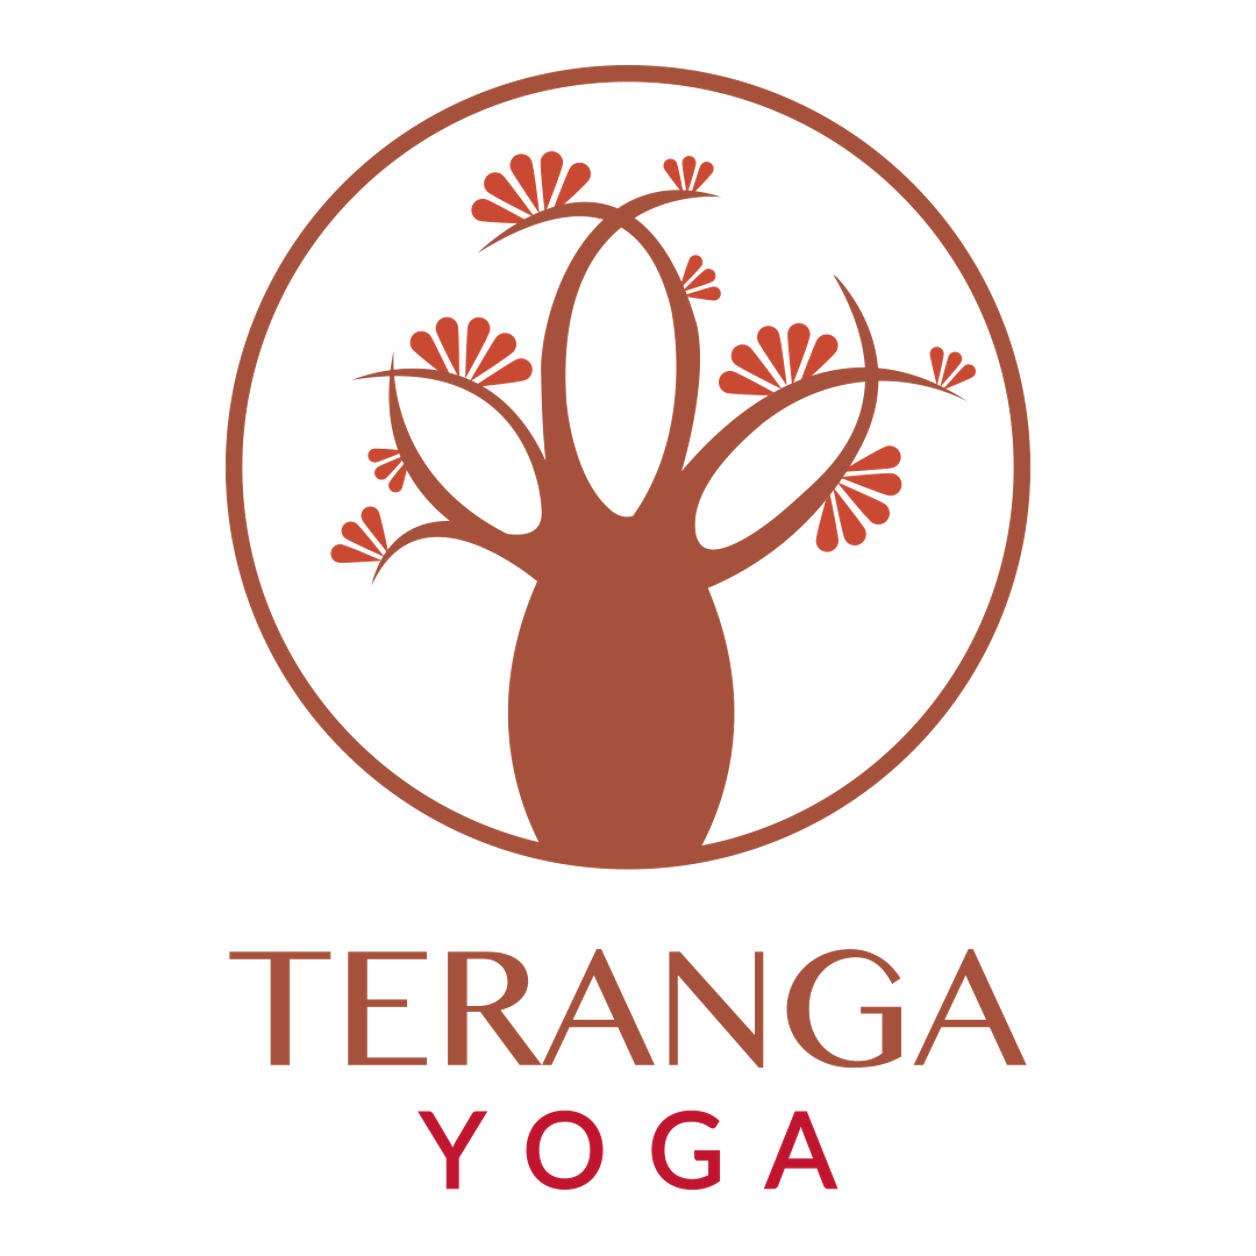 Teranga Yoga | Hot Yoga + Music | Open your heart and find the beat